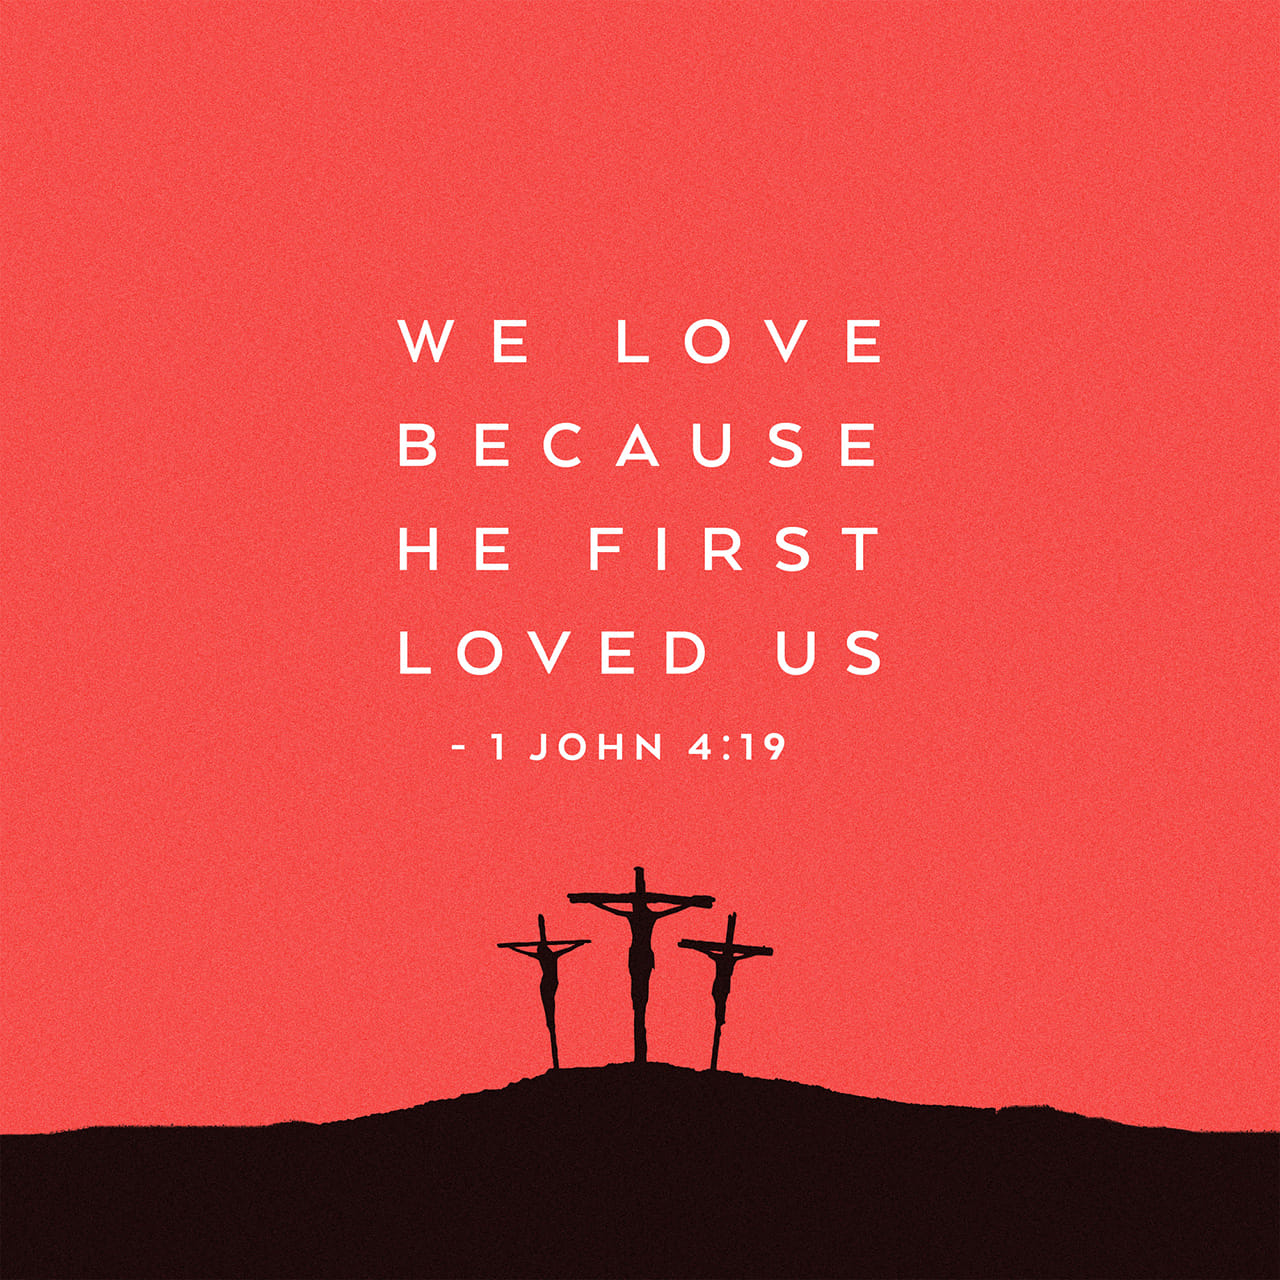 Which Bible Verse Speaks About Love